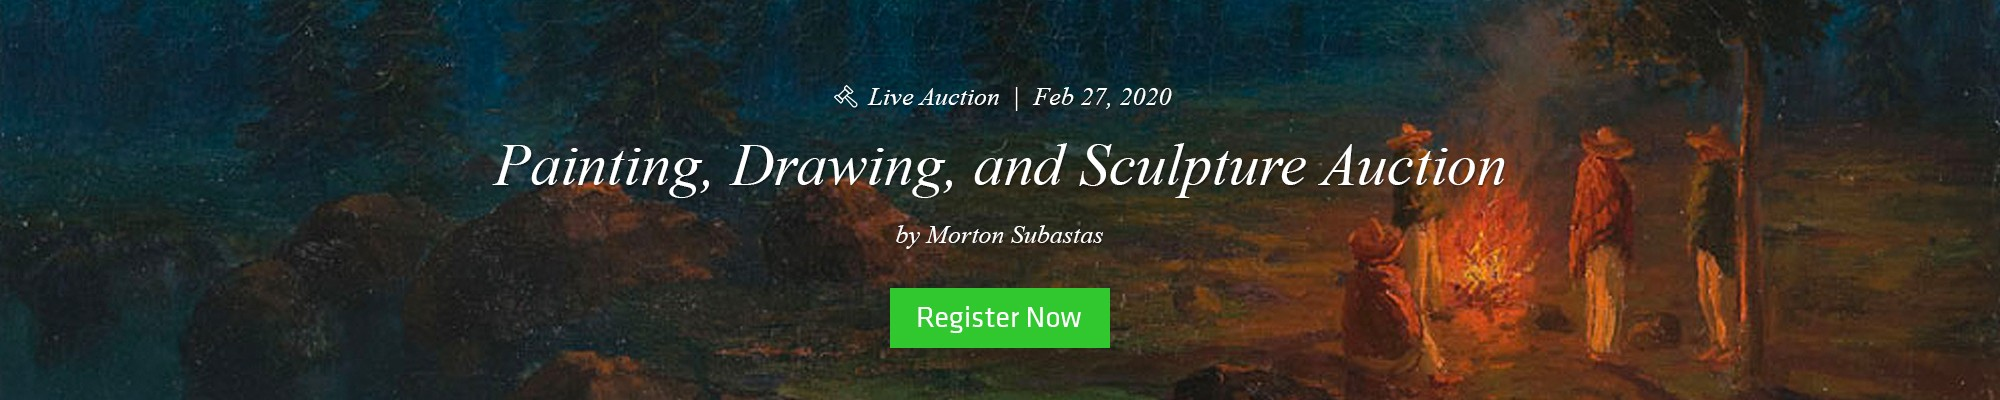 painting-drawing-and-sculpture-auction